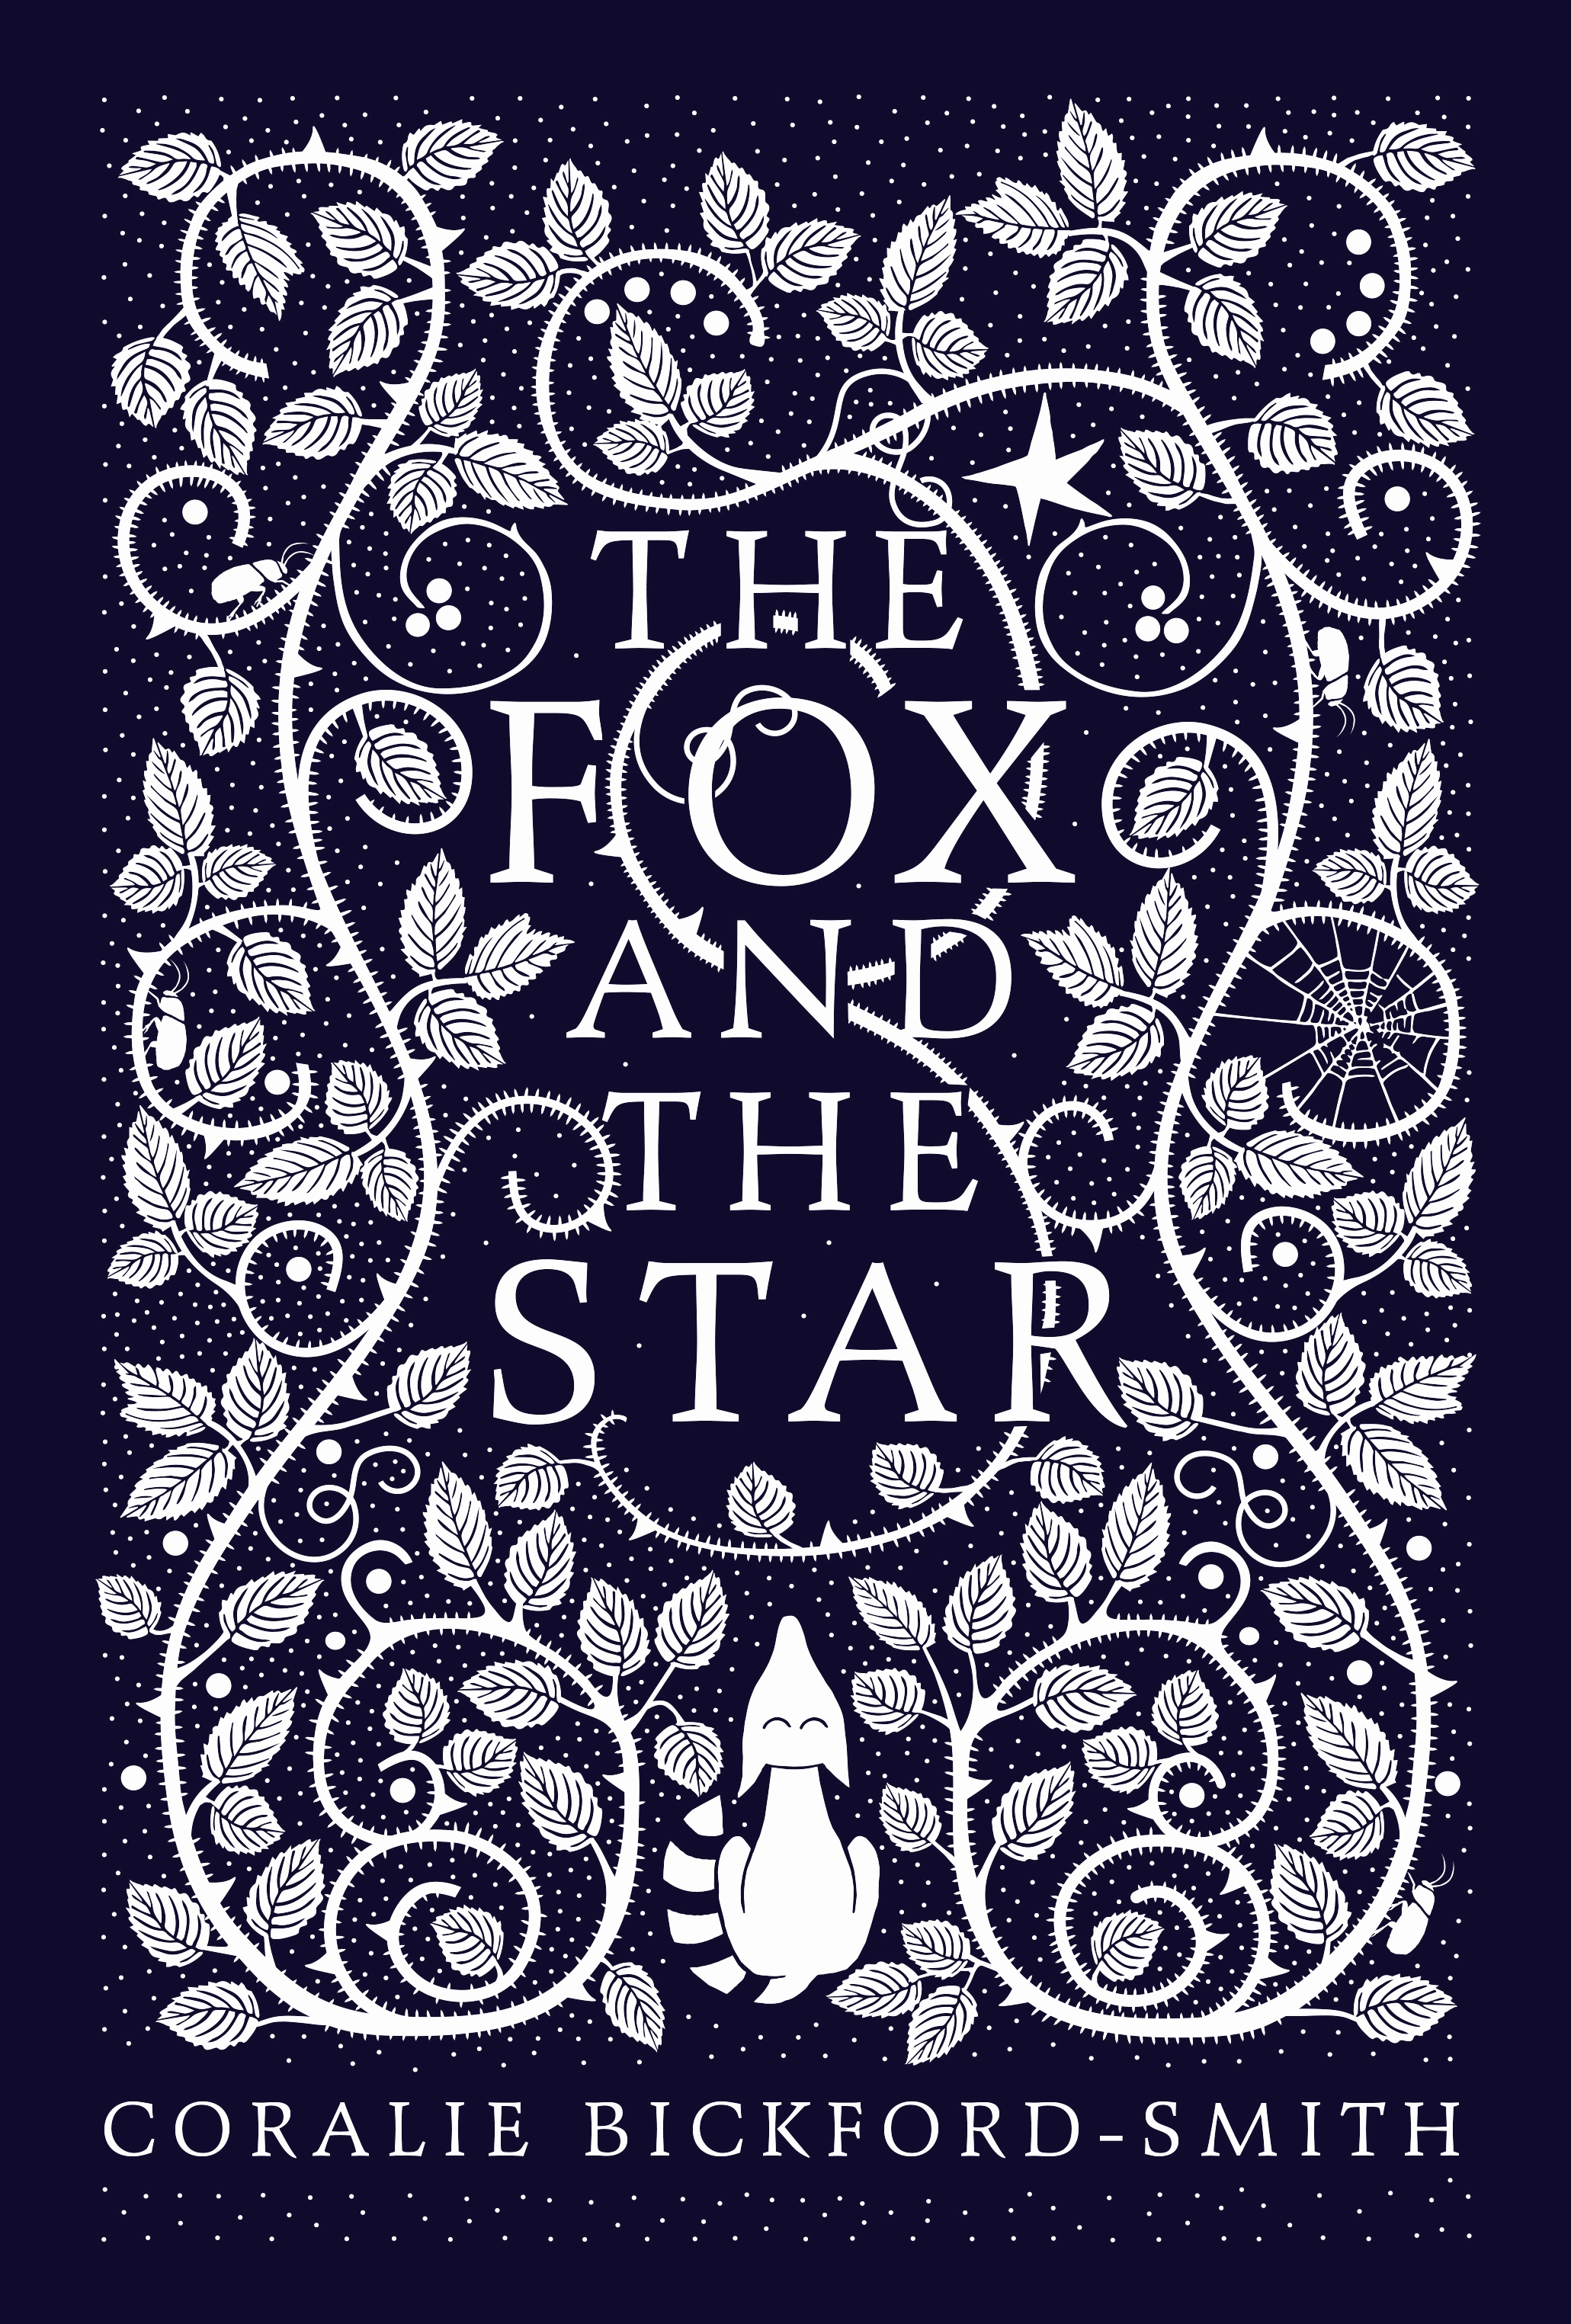 01_The Fox and The Star (c) Coralie Bickford-Smithjpg.jpg